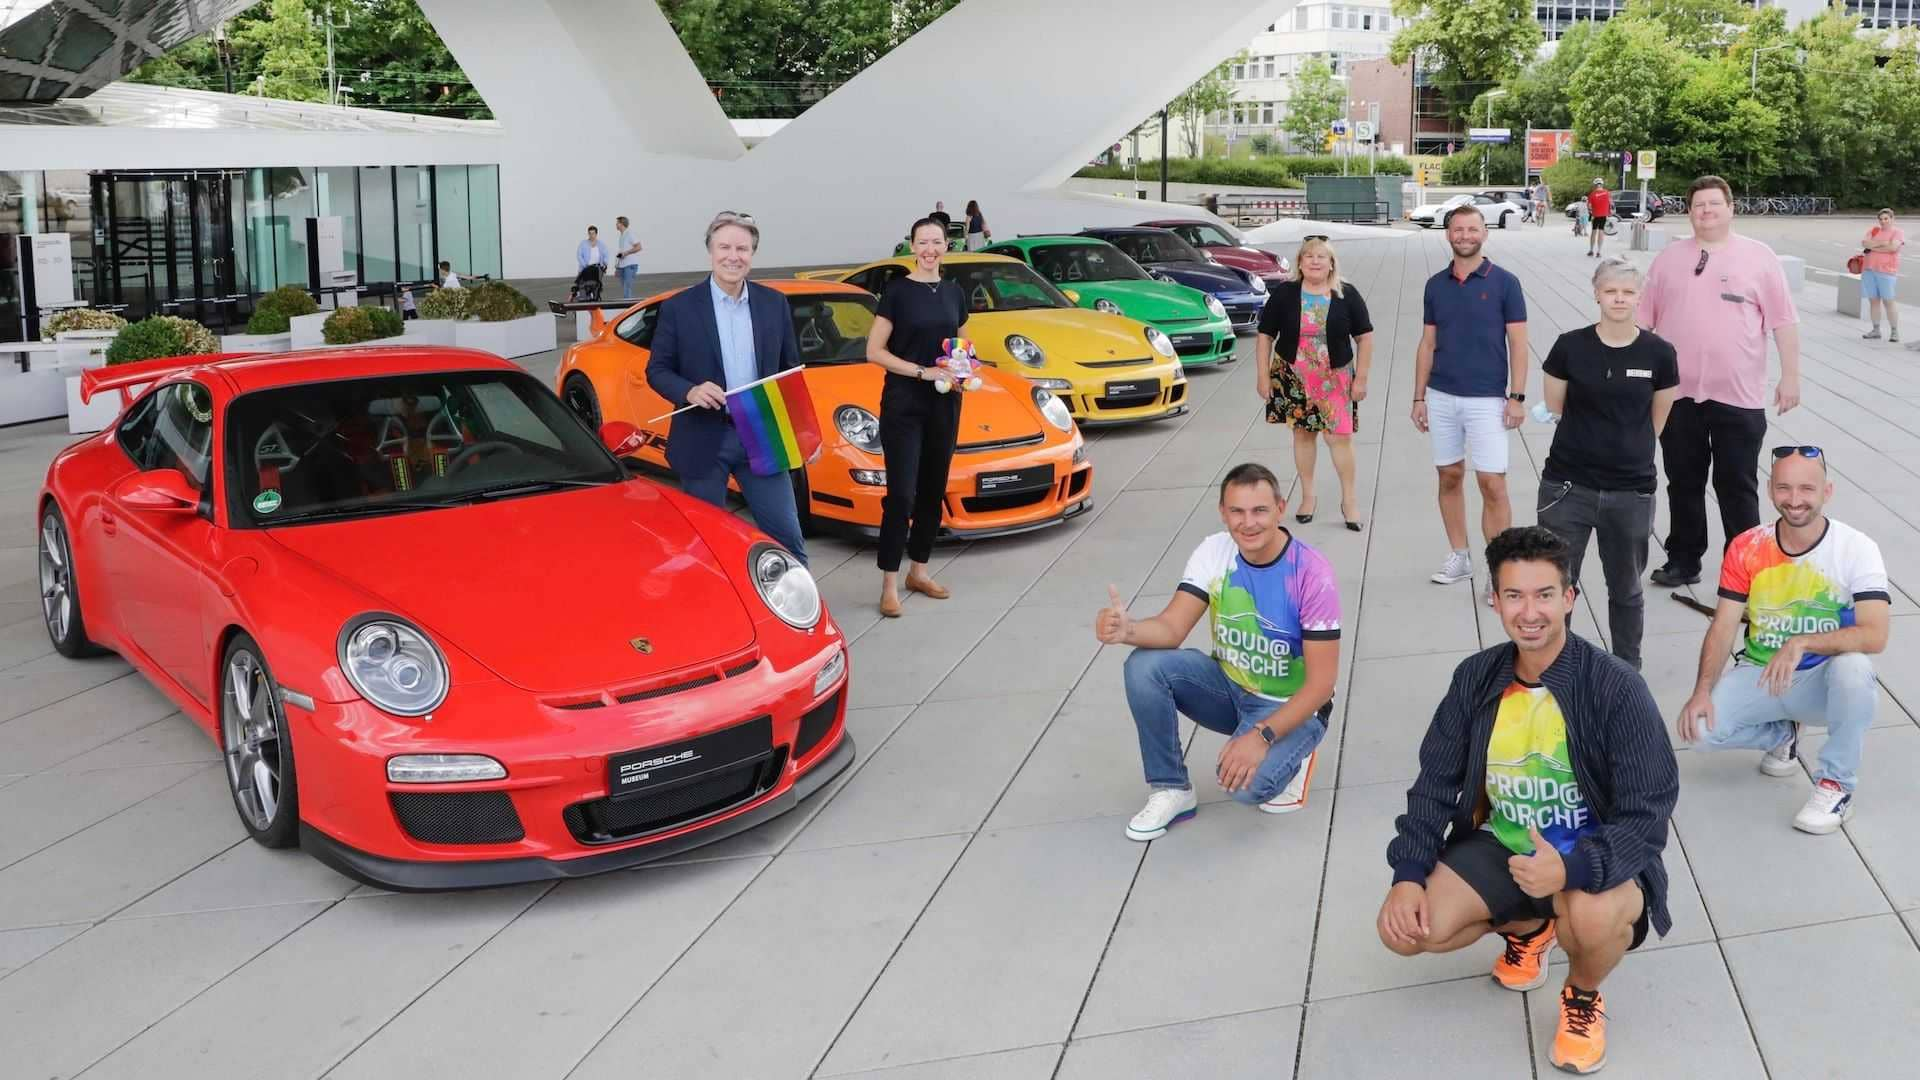 rainbow-colored-911s-in-solidarity-with-gay-pride